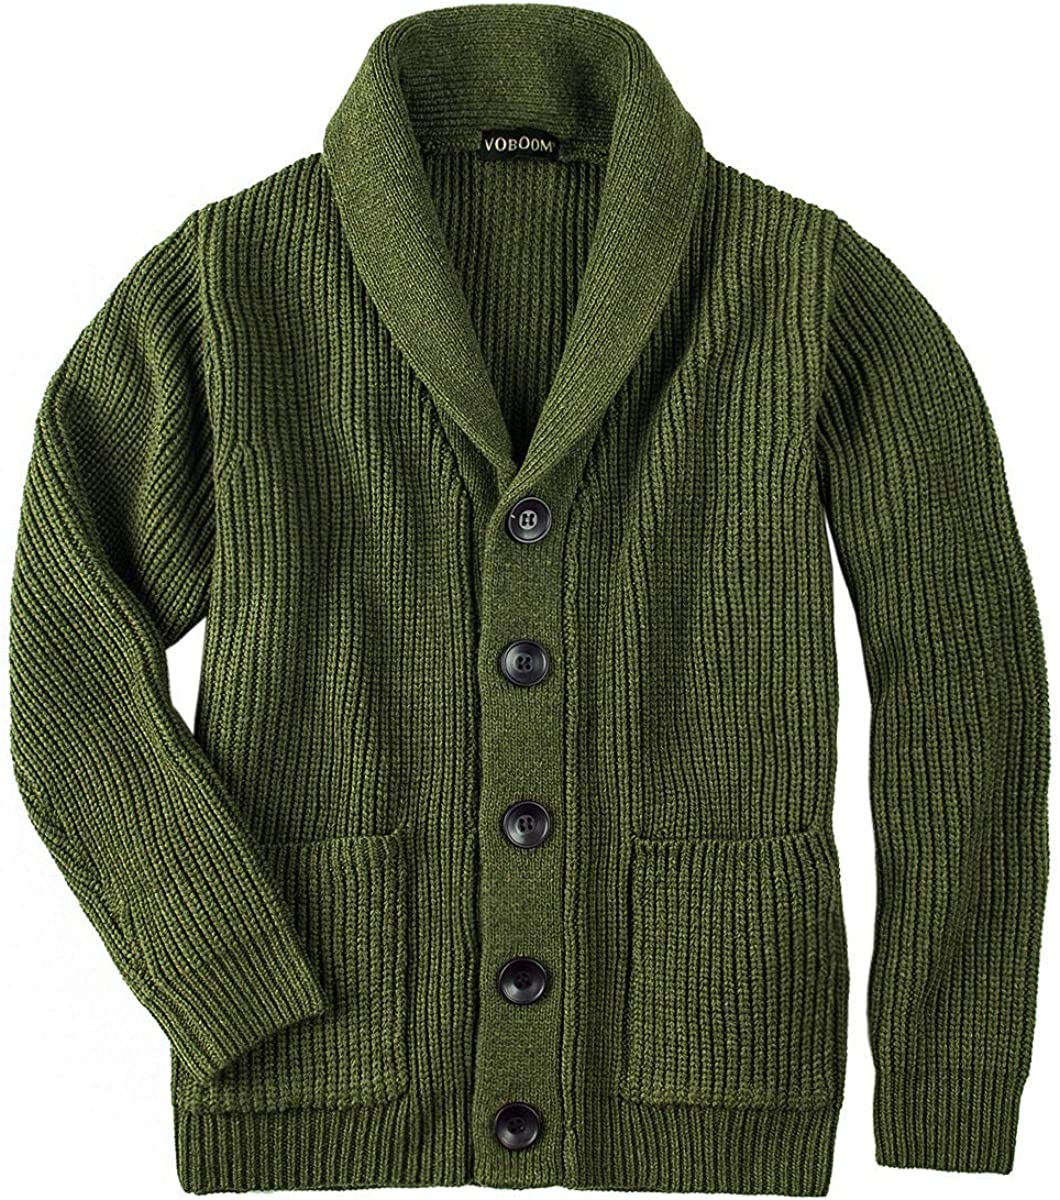 VOBOOM Mens Knitwear Button Down Shawl Collar Cardigan Sweater with Pockets